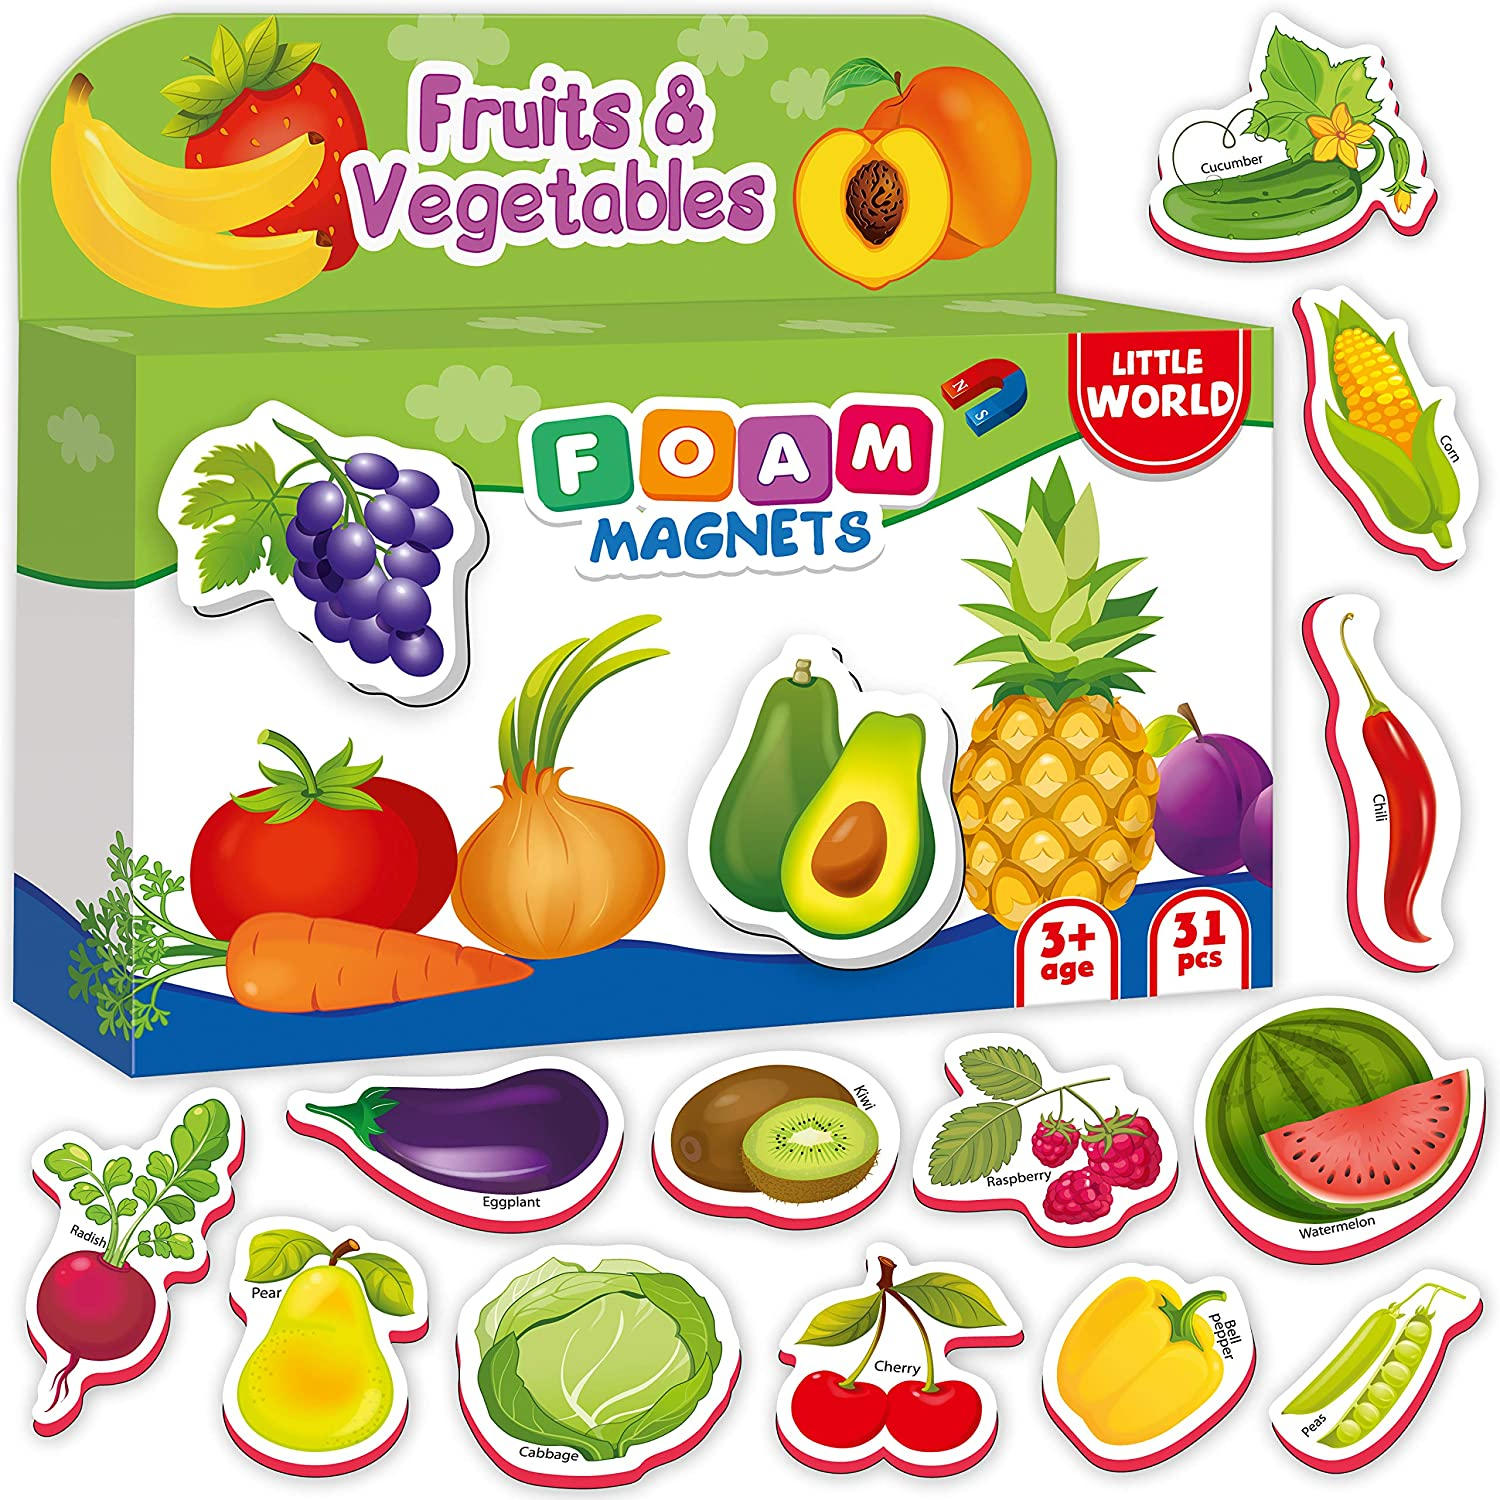 Amazon Com Little World Foam Refrigerator Magnets For Toddlers Age 1 Fridge Magnets For Kids Large Baby Magnets 31 Magnetic Vegetables And Fruits For Toddler Learning Safe Kids Magnets